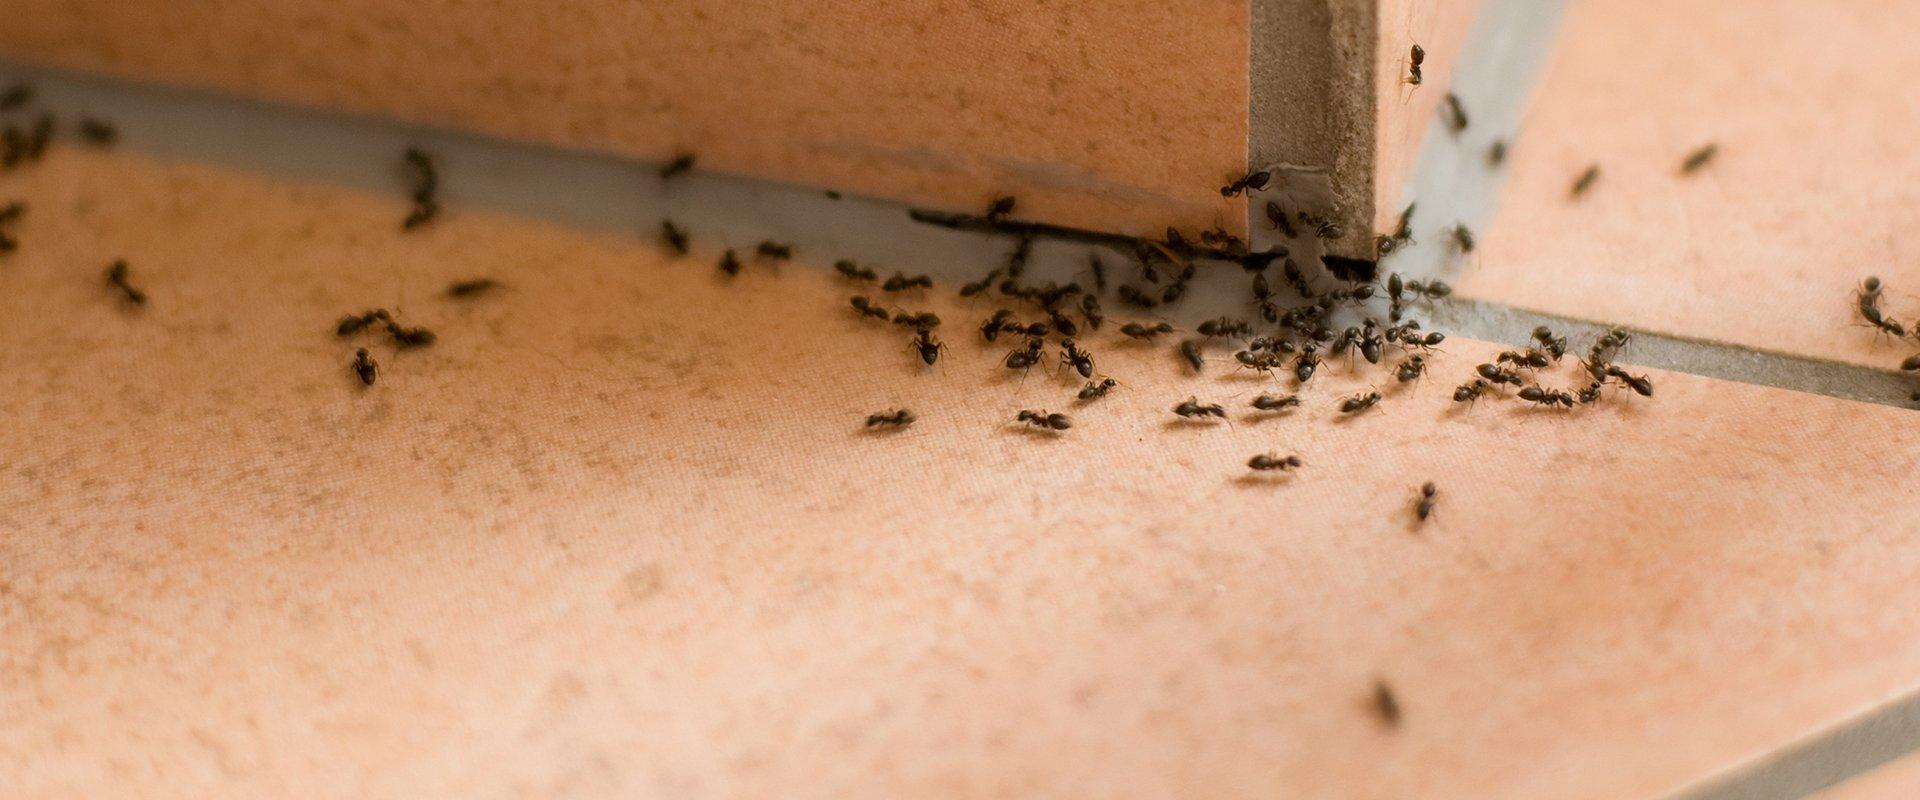 ants in a bathroom